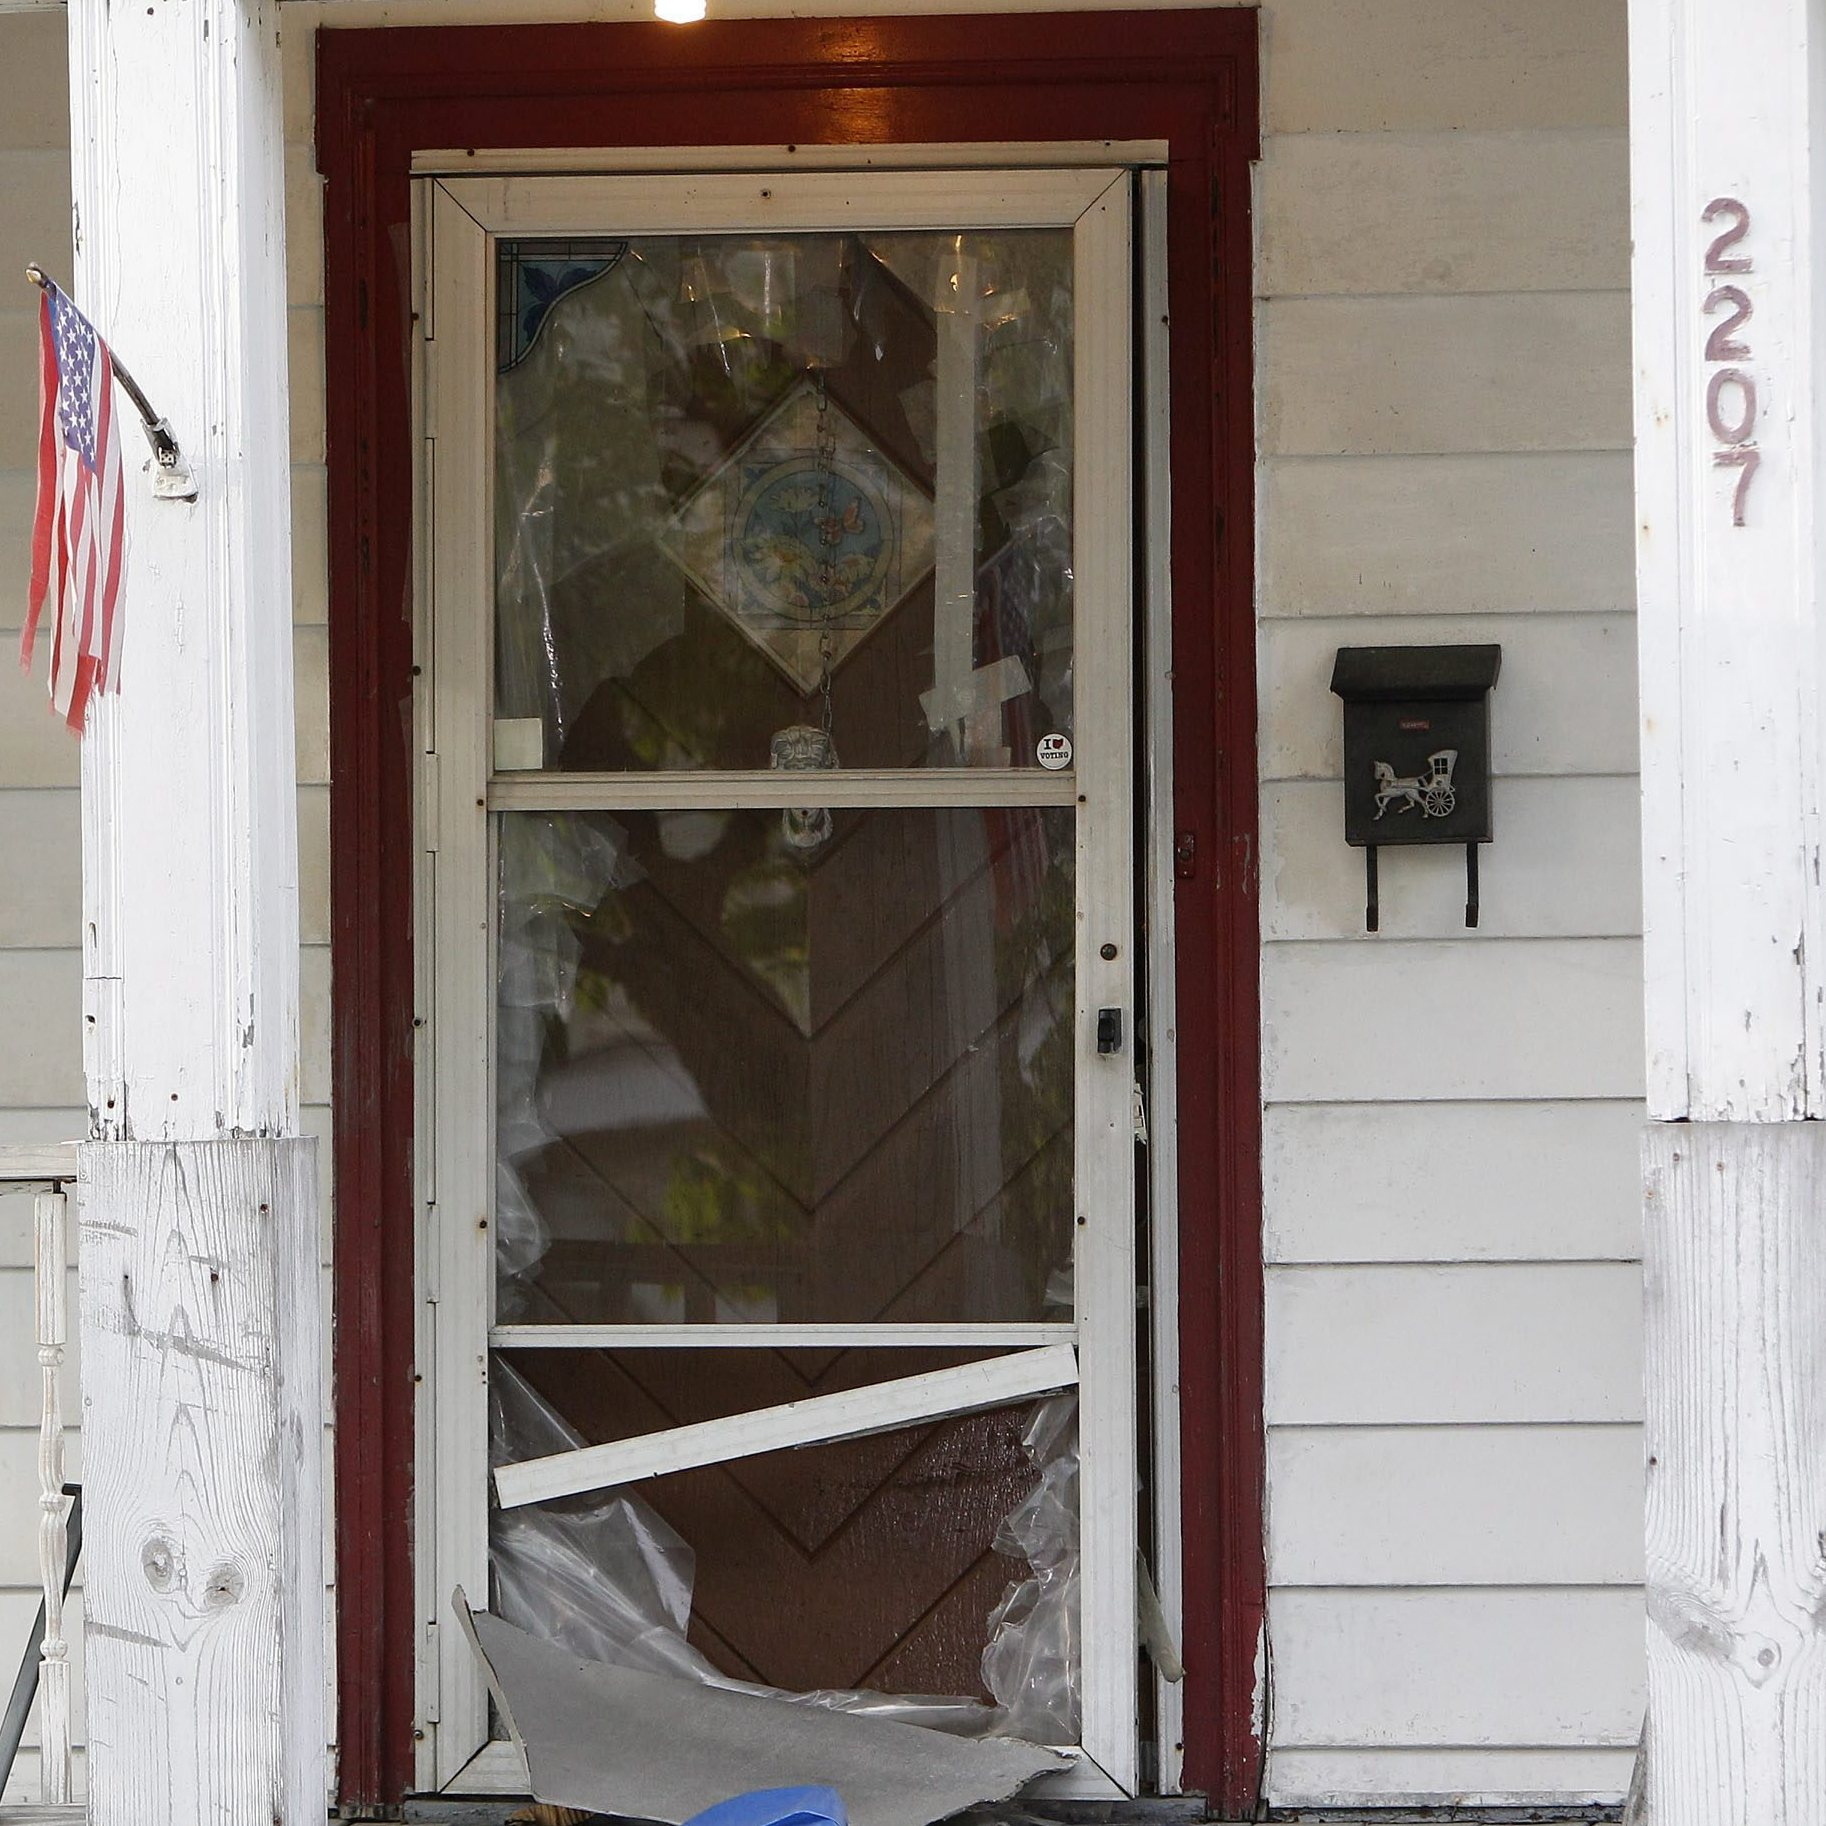 The house at 2207 Seymour Ave. in Cleveland where three young women who had been missing for about a decade were discovered on Monday. With help from a neighbor, victim Amanda Berry was able to escape by breaking through the front door.